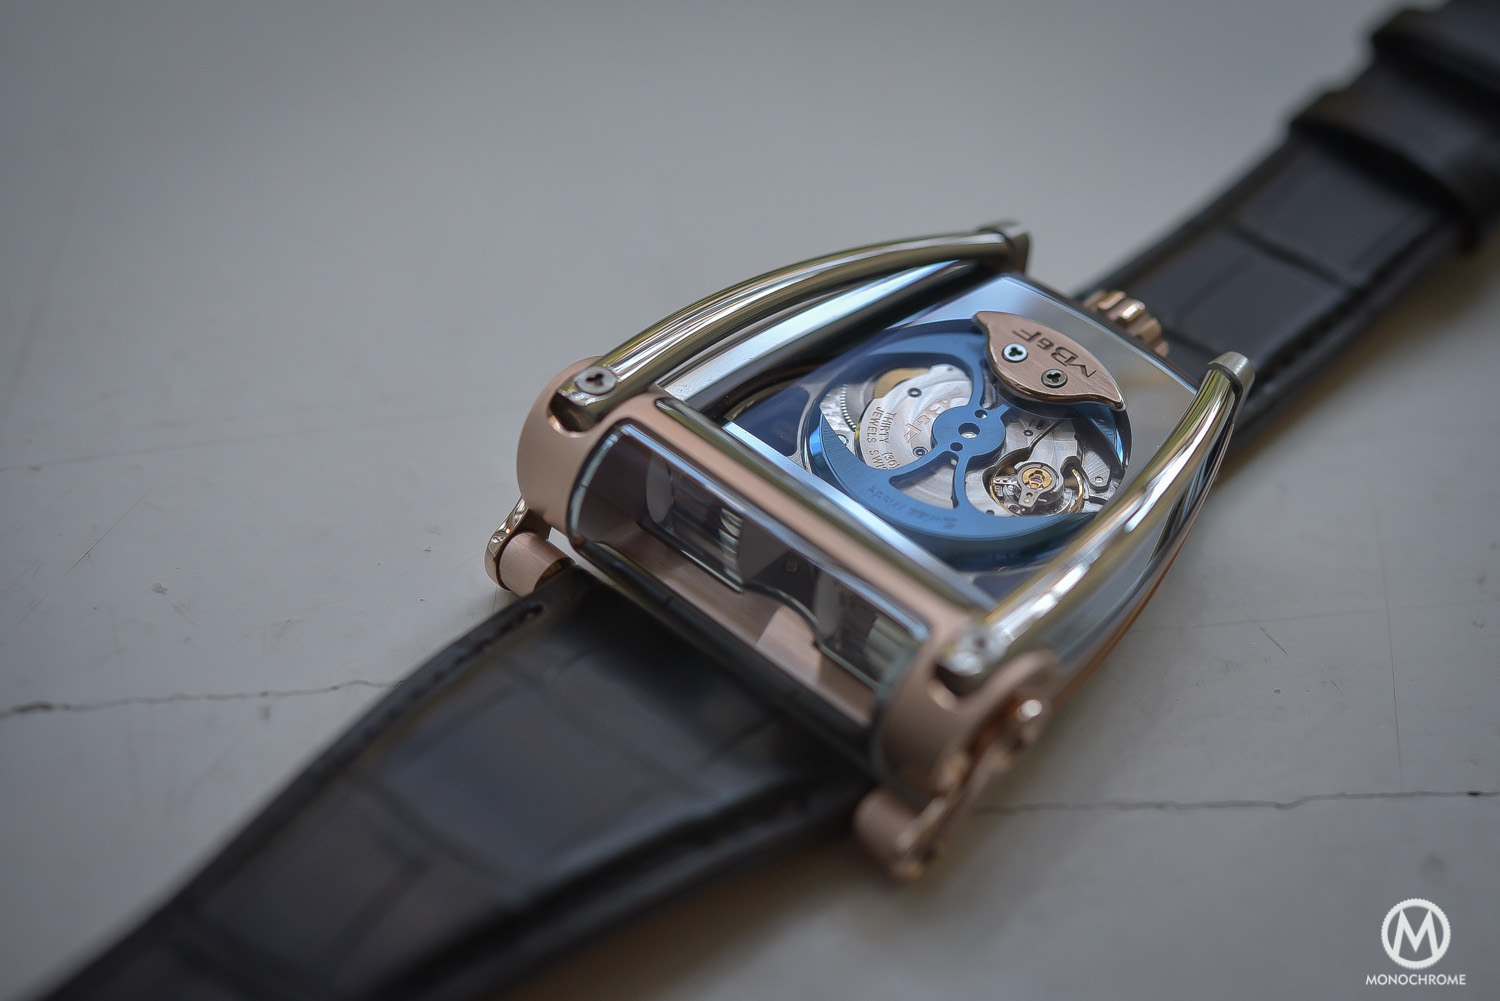 MB&F HM8 Can-Am